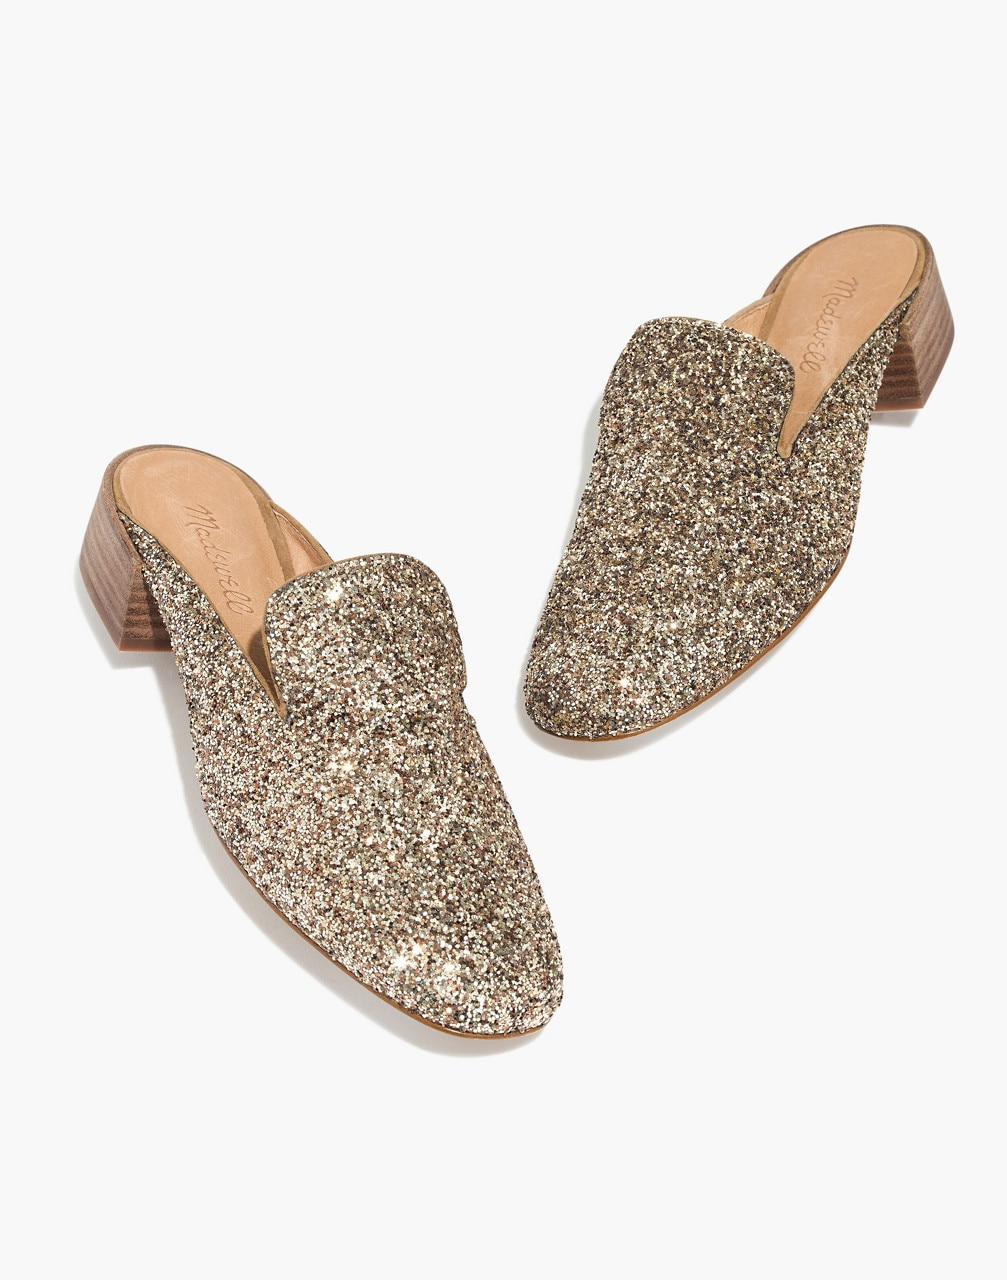 Madewell Glitter Loafer Mule (New Year's Eve Shoes)